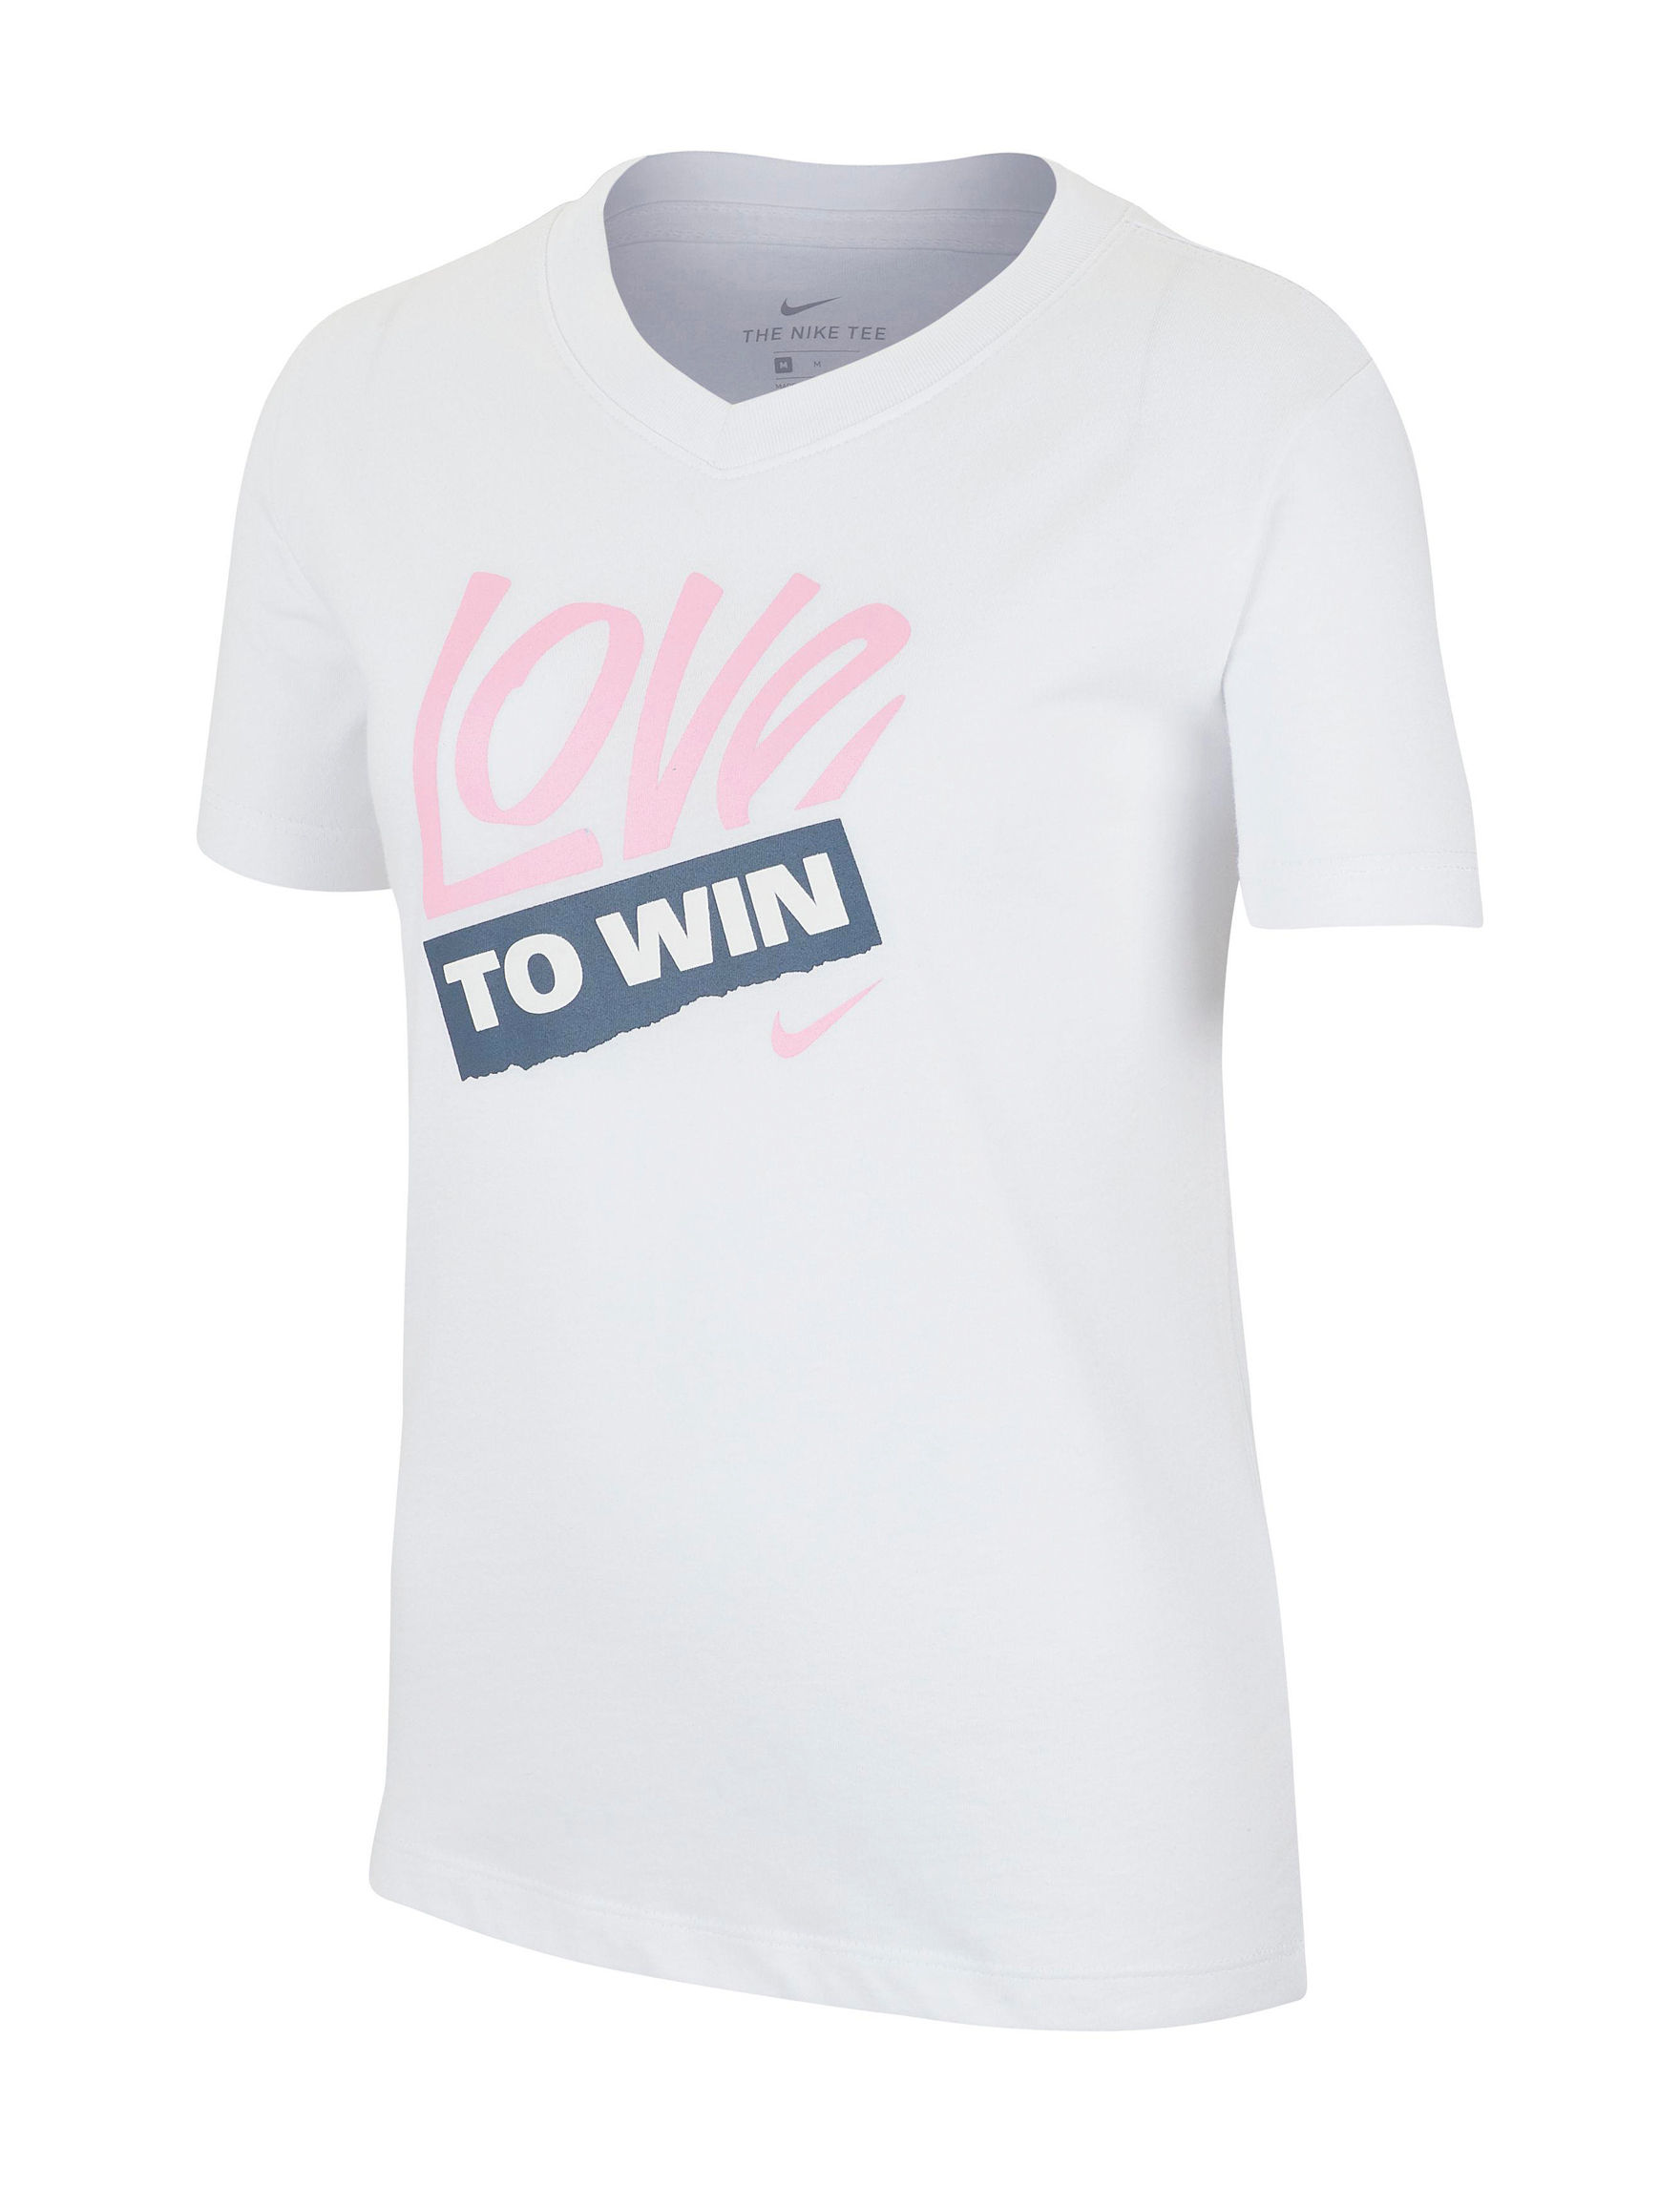 4109c82a Nike Sportswear Love To Win Graphic T-shirt - Girls 7-16 | Stage Stores